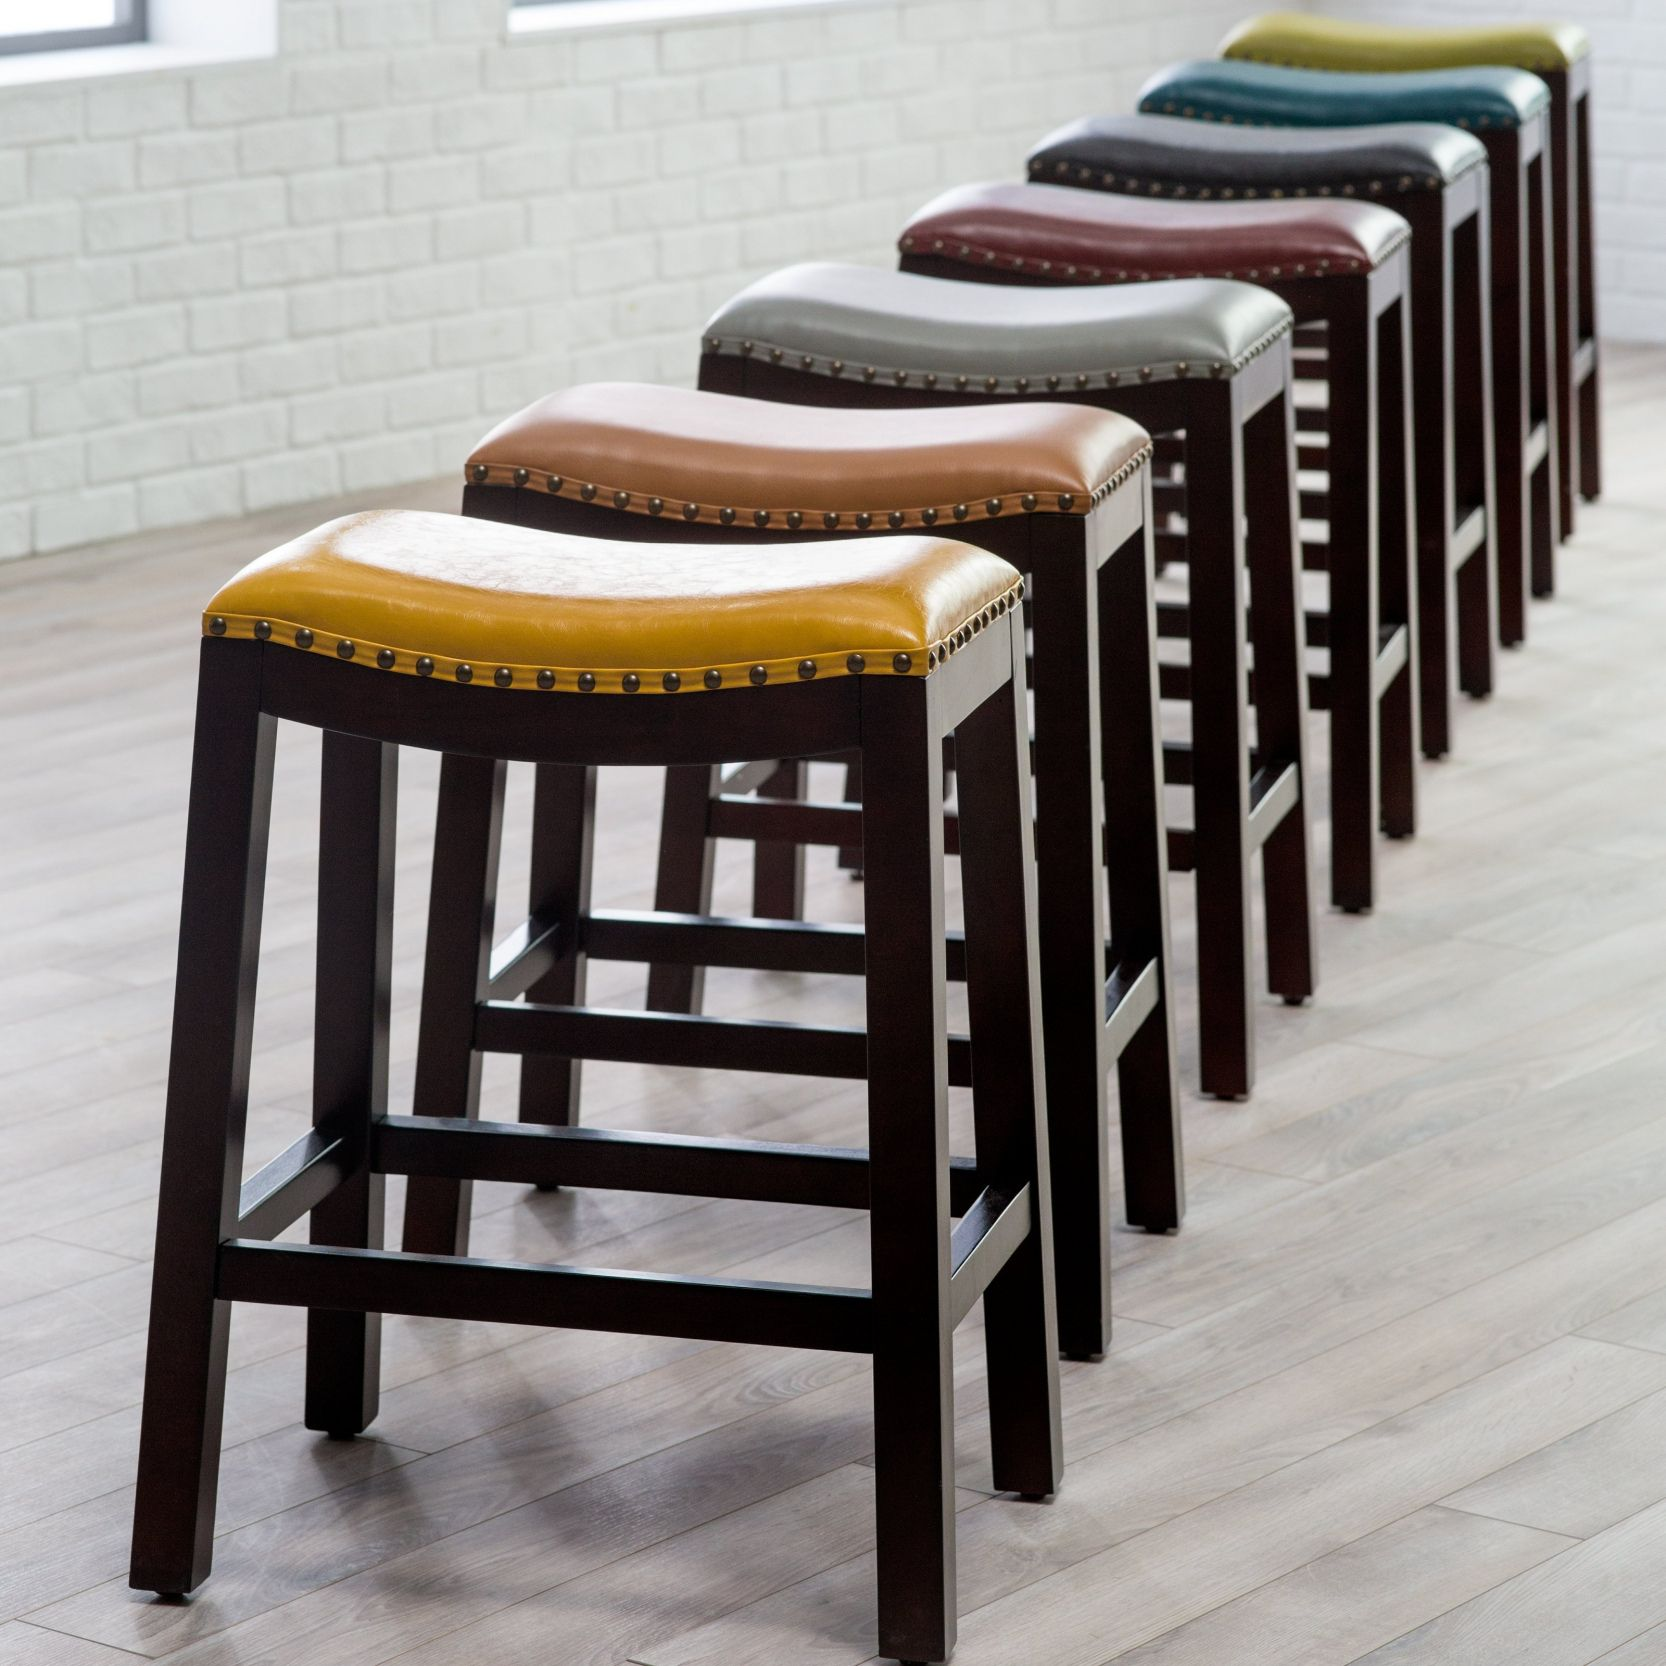 55 Asian Style Bar Stools Luxury Modern Furniture Check More At Http